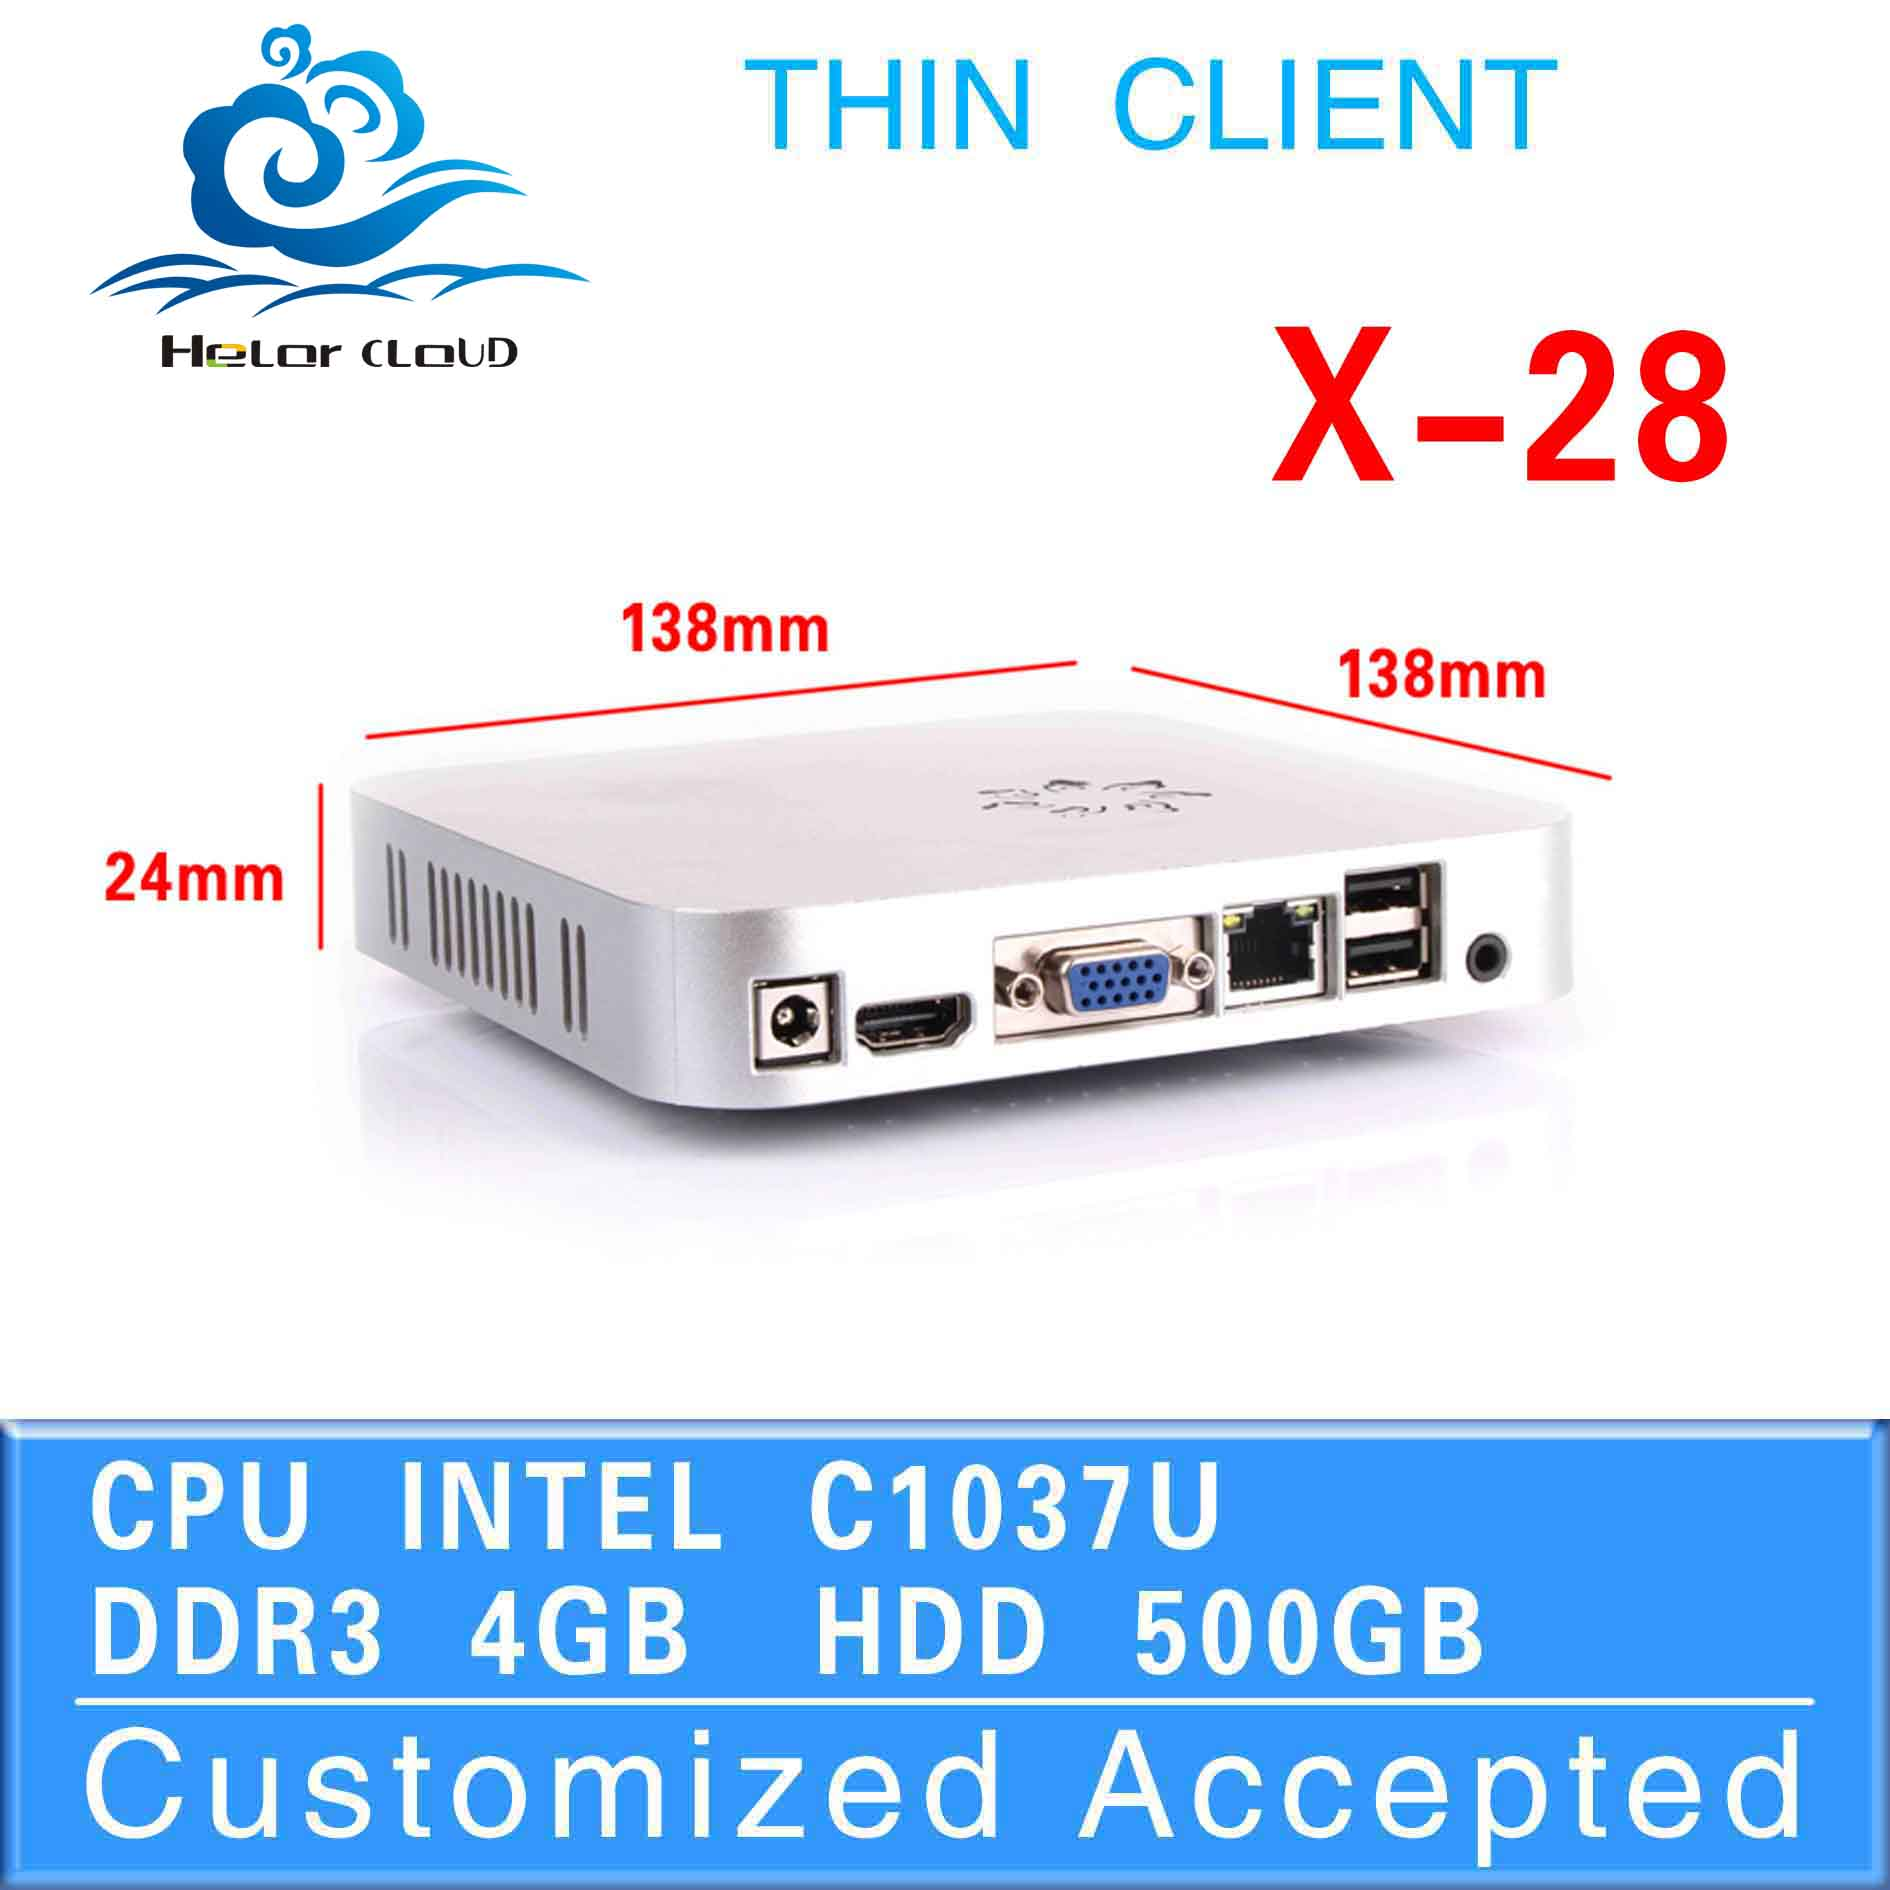 Hot sale! thin client pc share mini desktop computer hdmi x-28 mini pc linux support full screen movies 4g ram 500g ssd(China (Mainland))